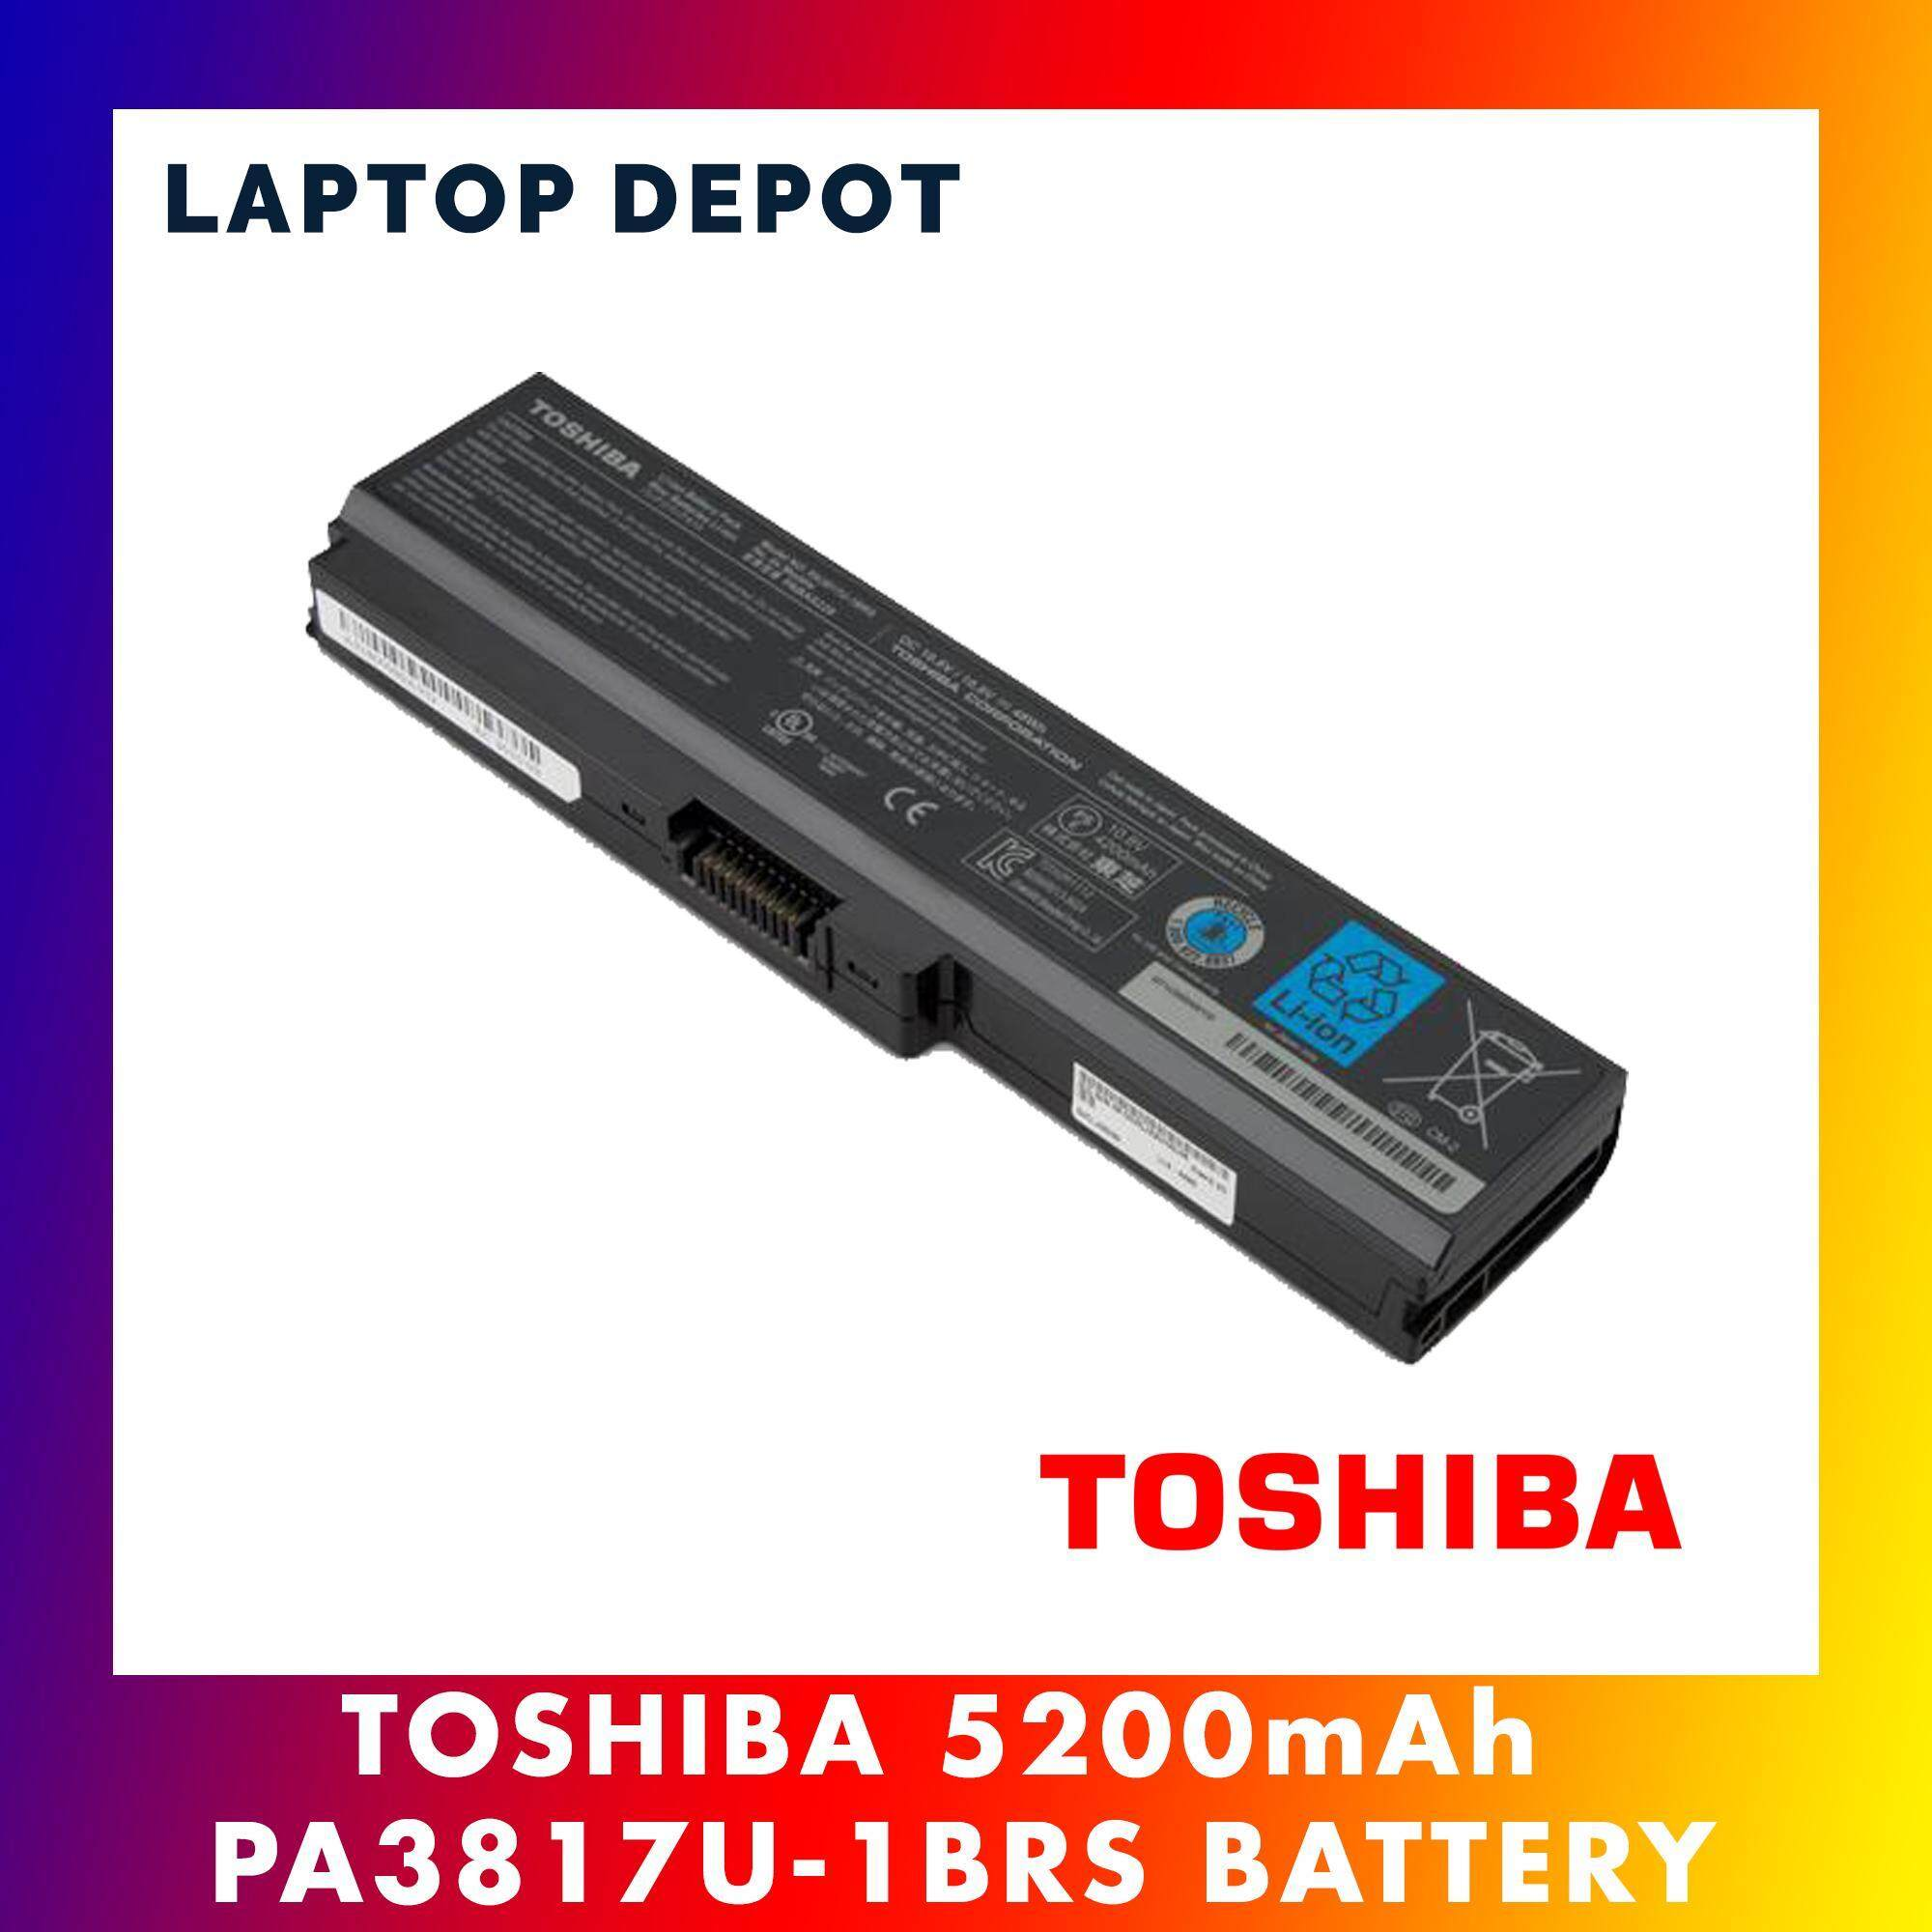 Fitur Toshiba Ori Keyboard Laptop Notebook C600 C605 C640 L600 L630 Satelite L735 L745 C645 L645 L635 1 Year Warranty Pa3817 L600d L650 L750d L700d L755d Battery